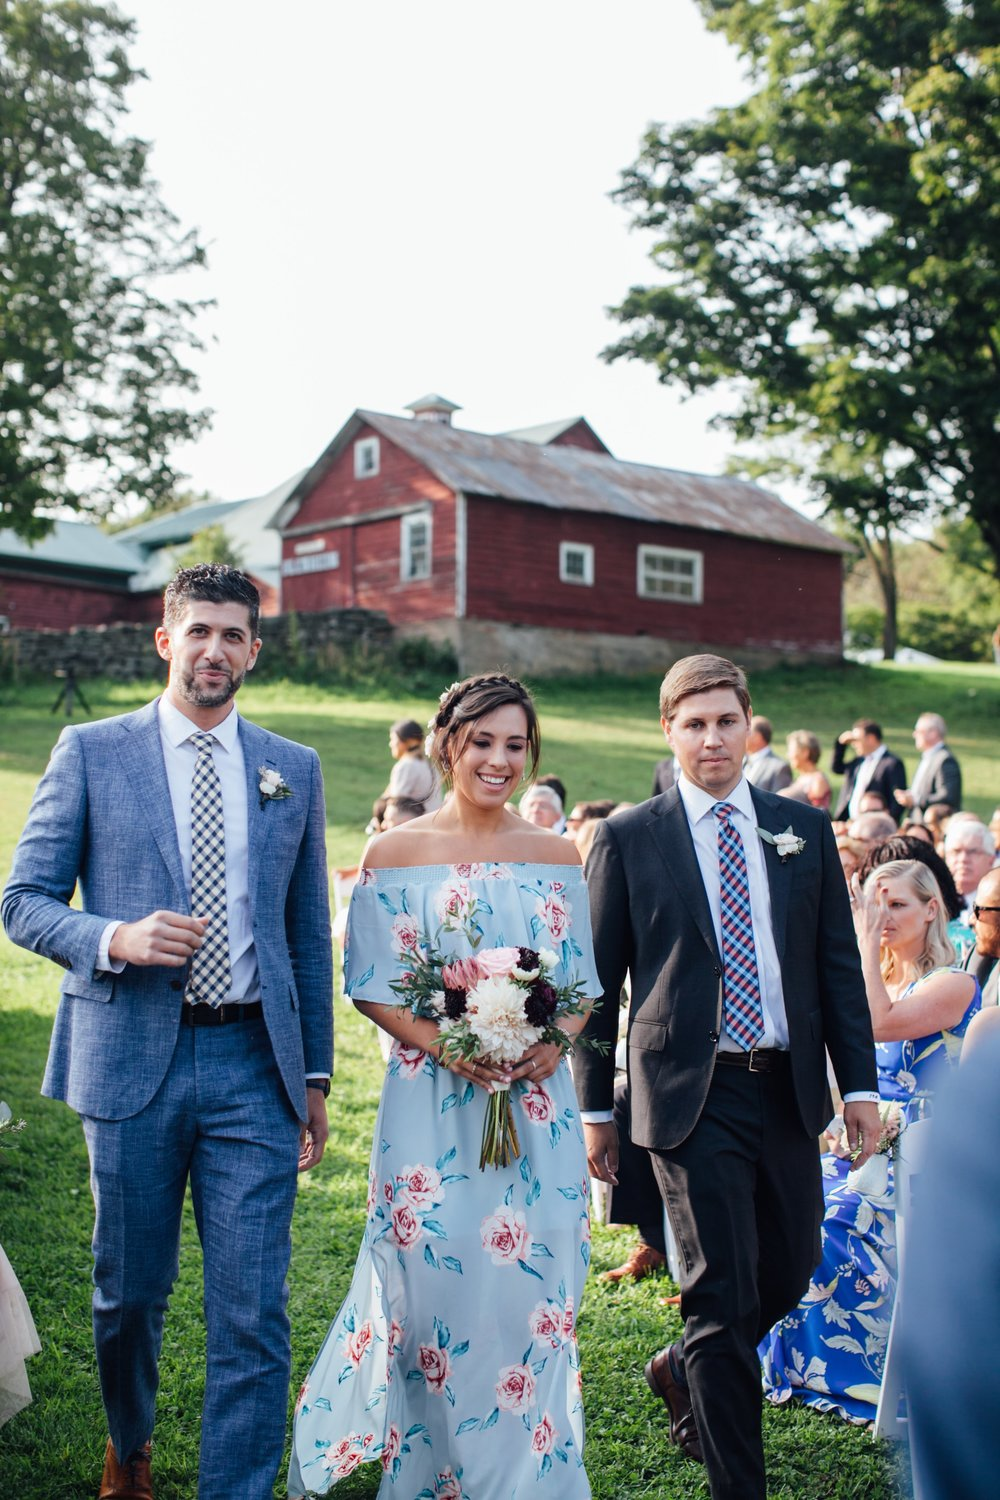 Courtney + Matt Blenheim Hill Farm Catskills NY Wedding Veronica Lola Photography 2017-356.jpg